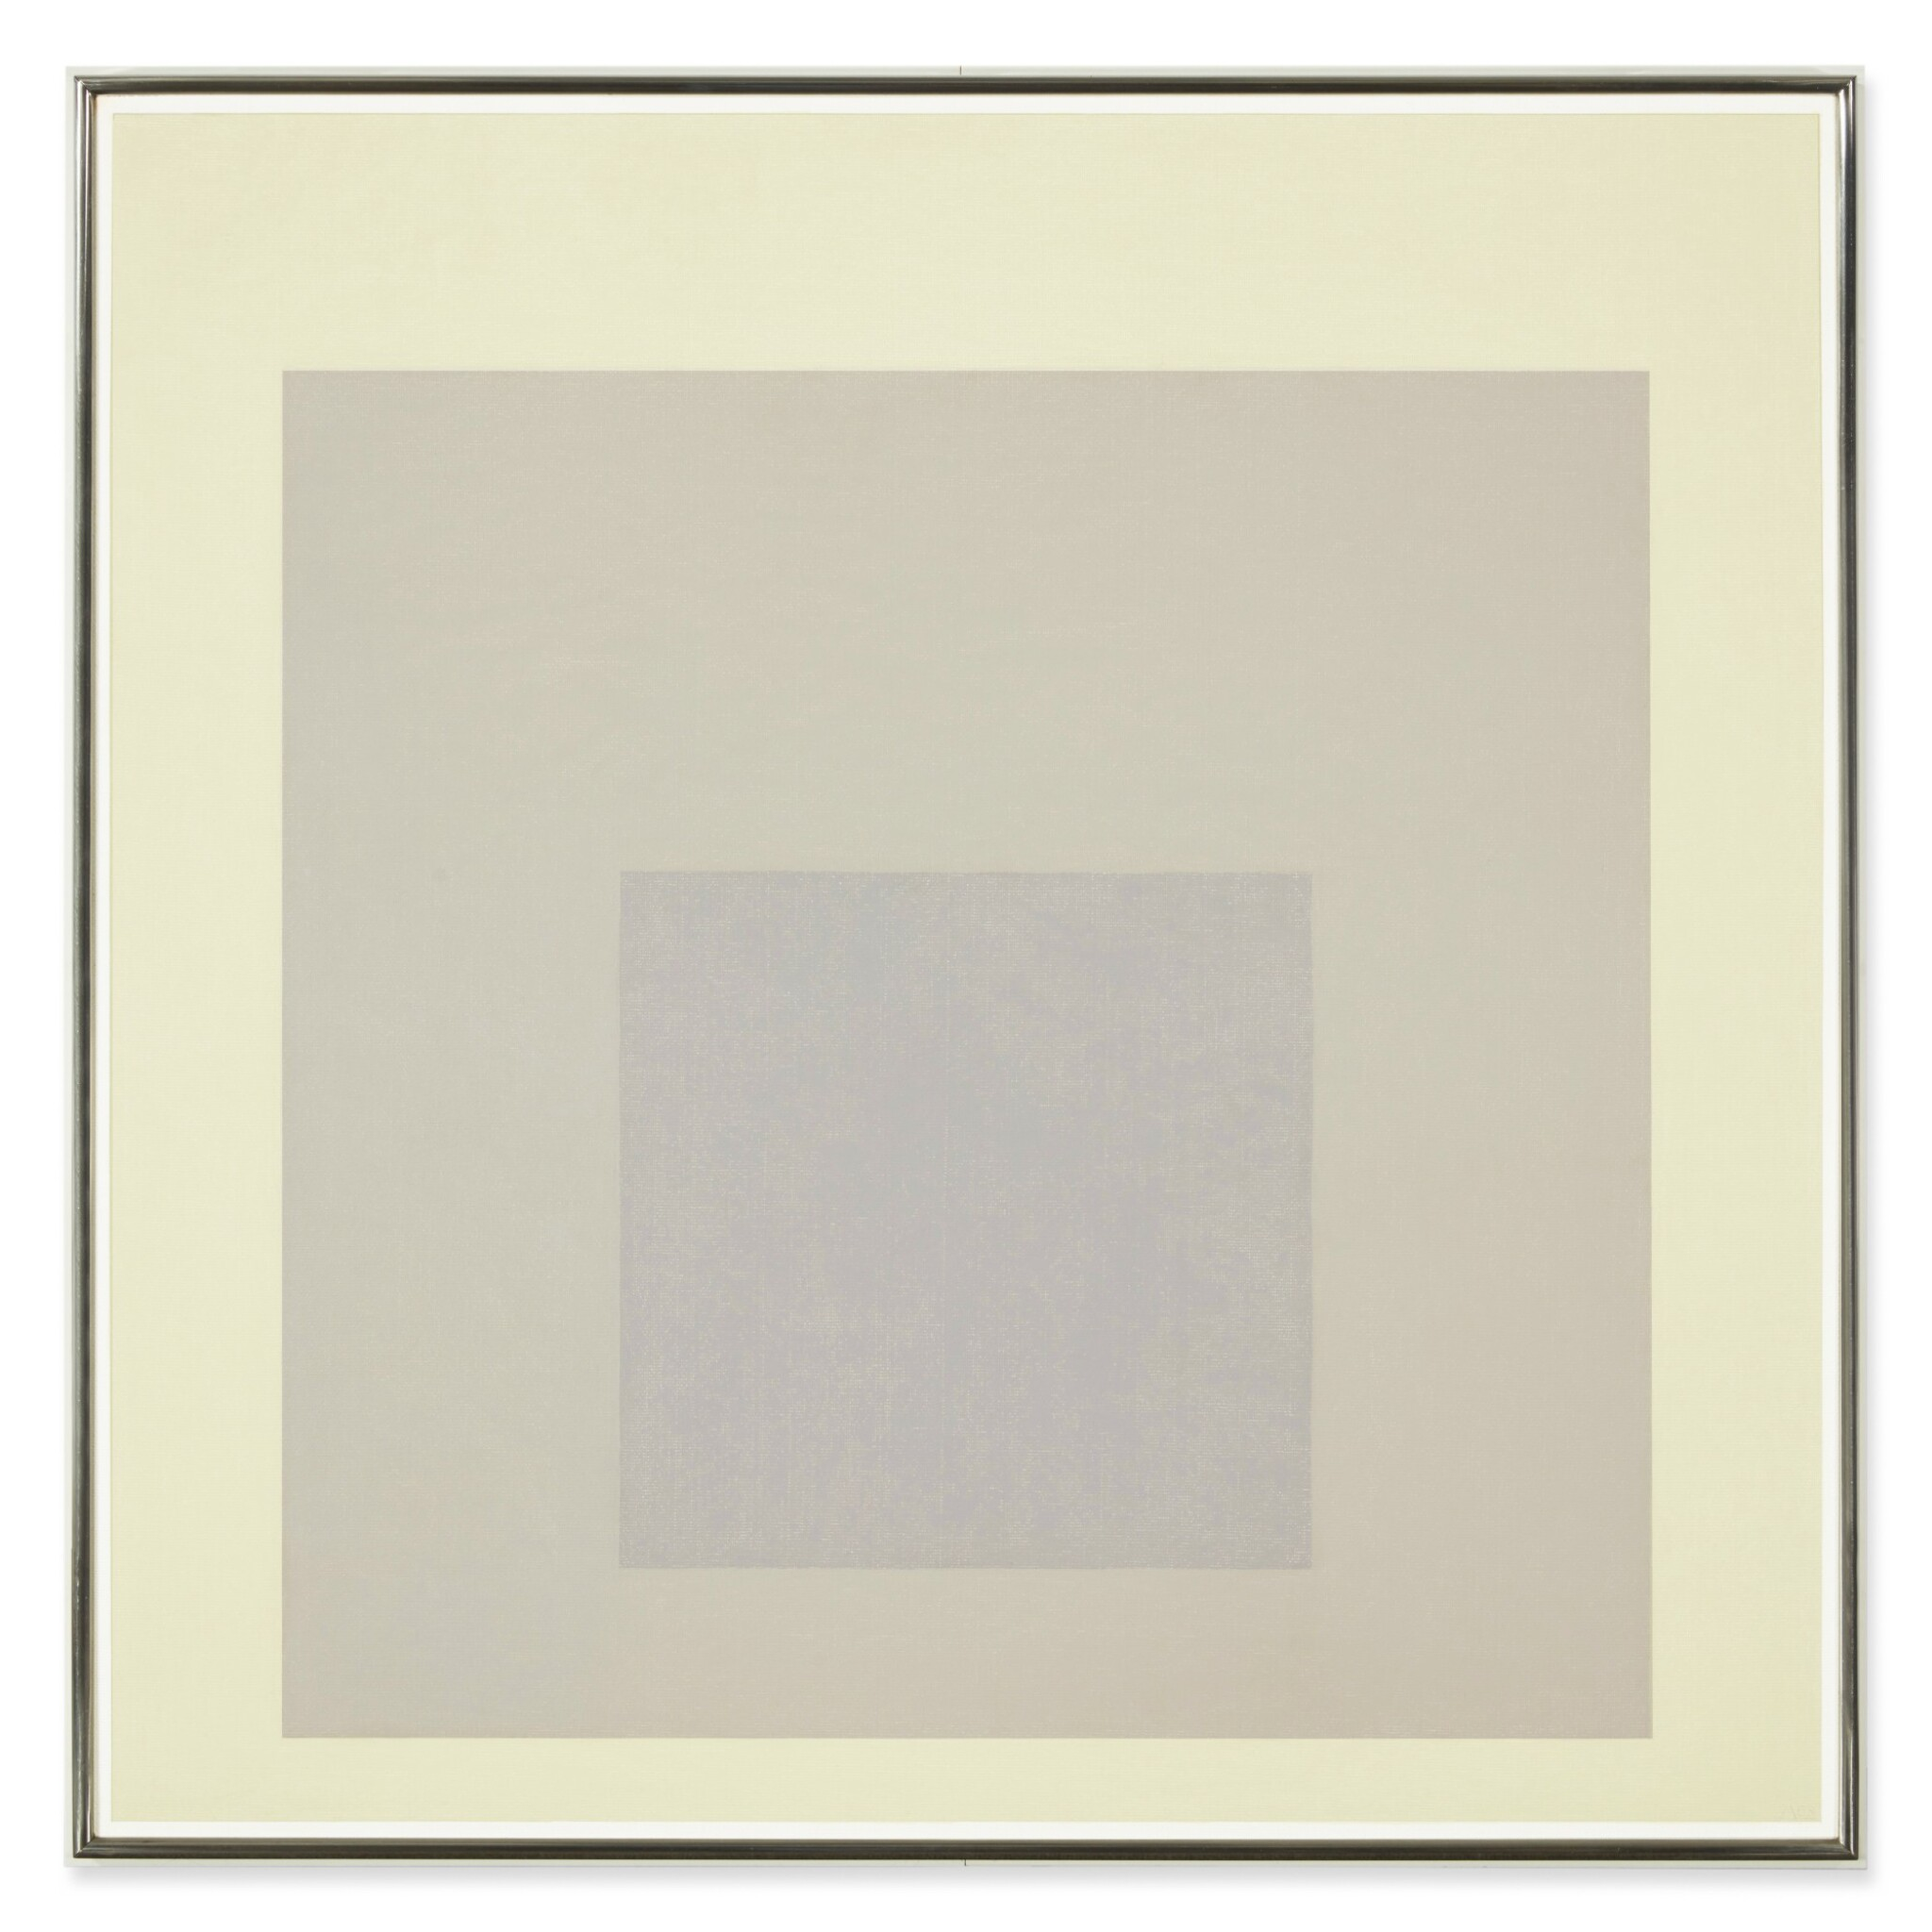 View full screen - View 1 of Lot 113. Study for Homage to the Square: Shaded Shade   《向方形致敬習作:暗影》.